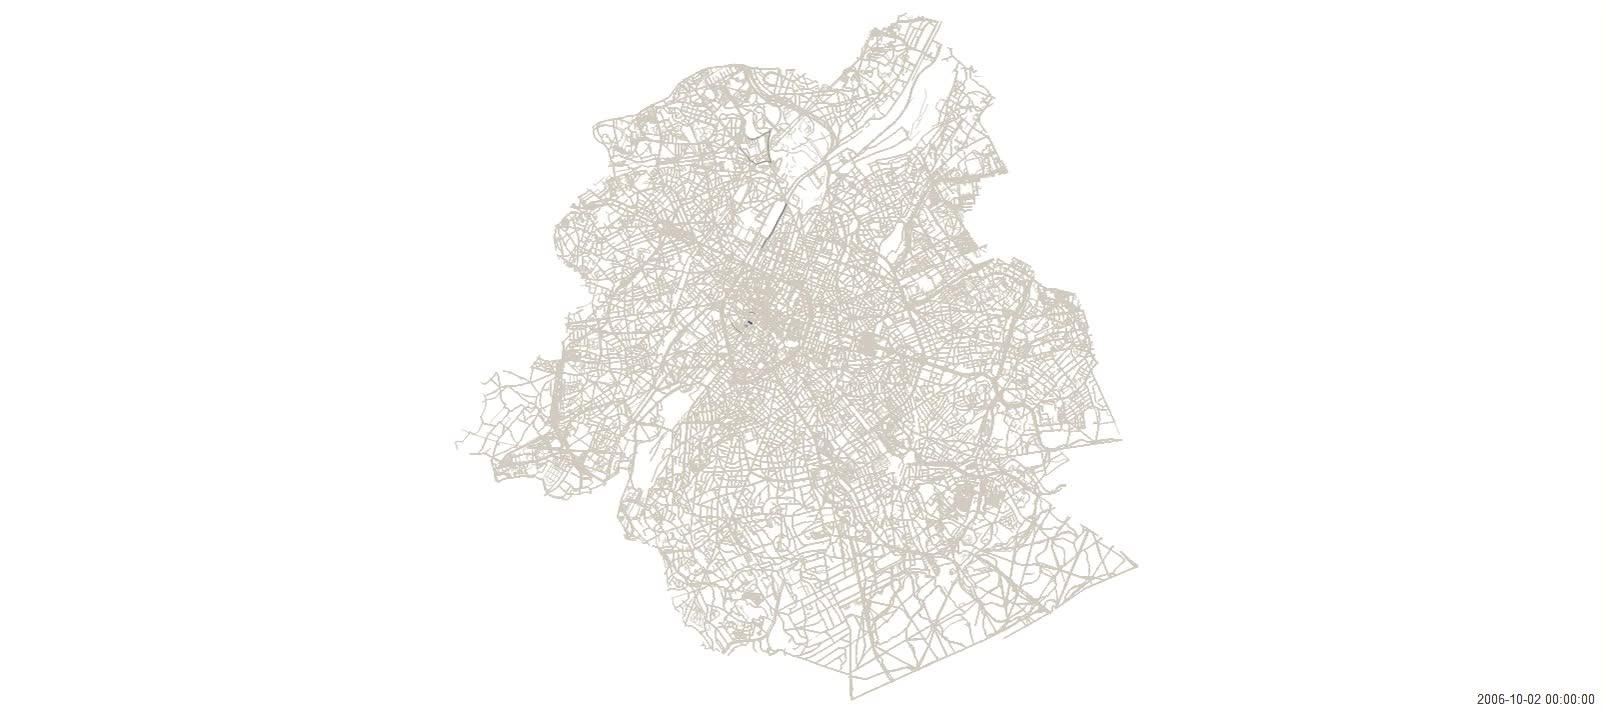 Quality PostHow roads were mapped in OpenStreetMap Brussels [GIF] [OC] [1605x716] (i..com) GIFs